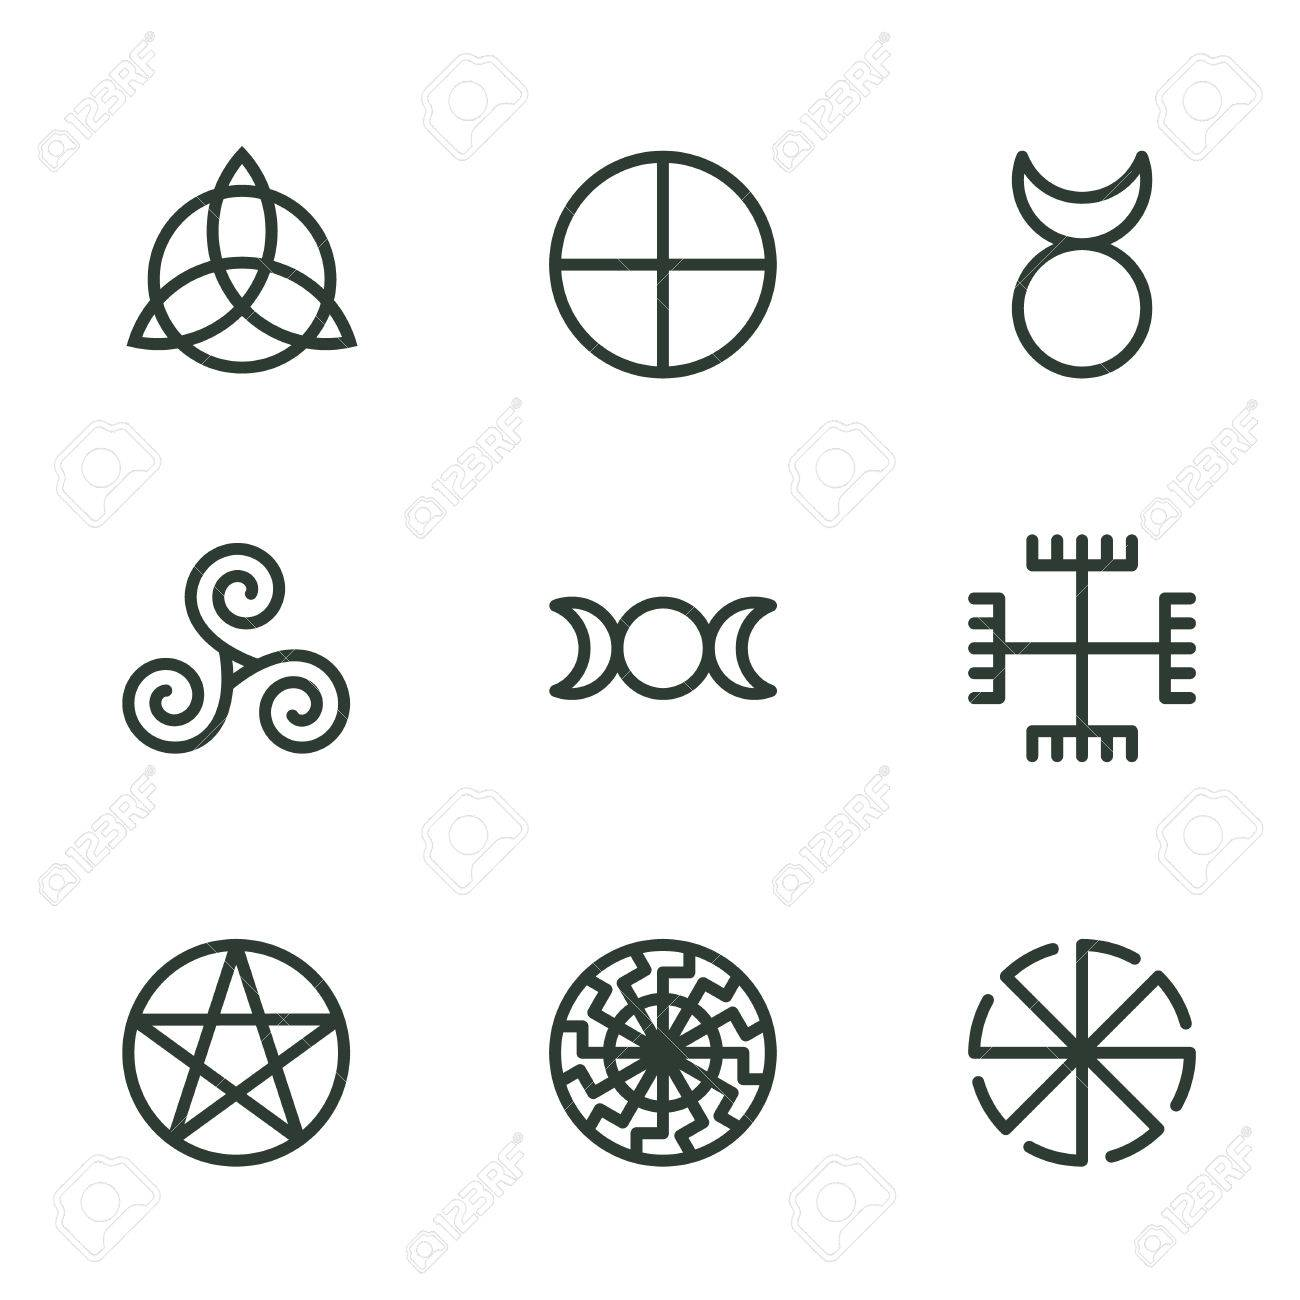 Pagan ancient symbols mystery sacred icons illustration vector pagan ancient symbols mystery sacred icons illustration vector stock vector 79651925 buycottarizona